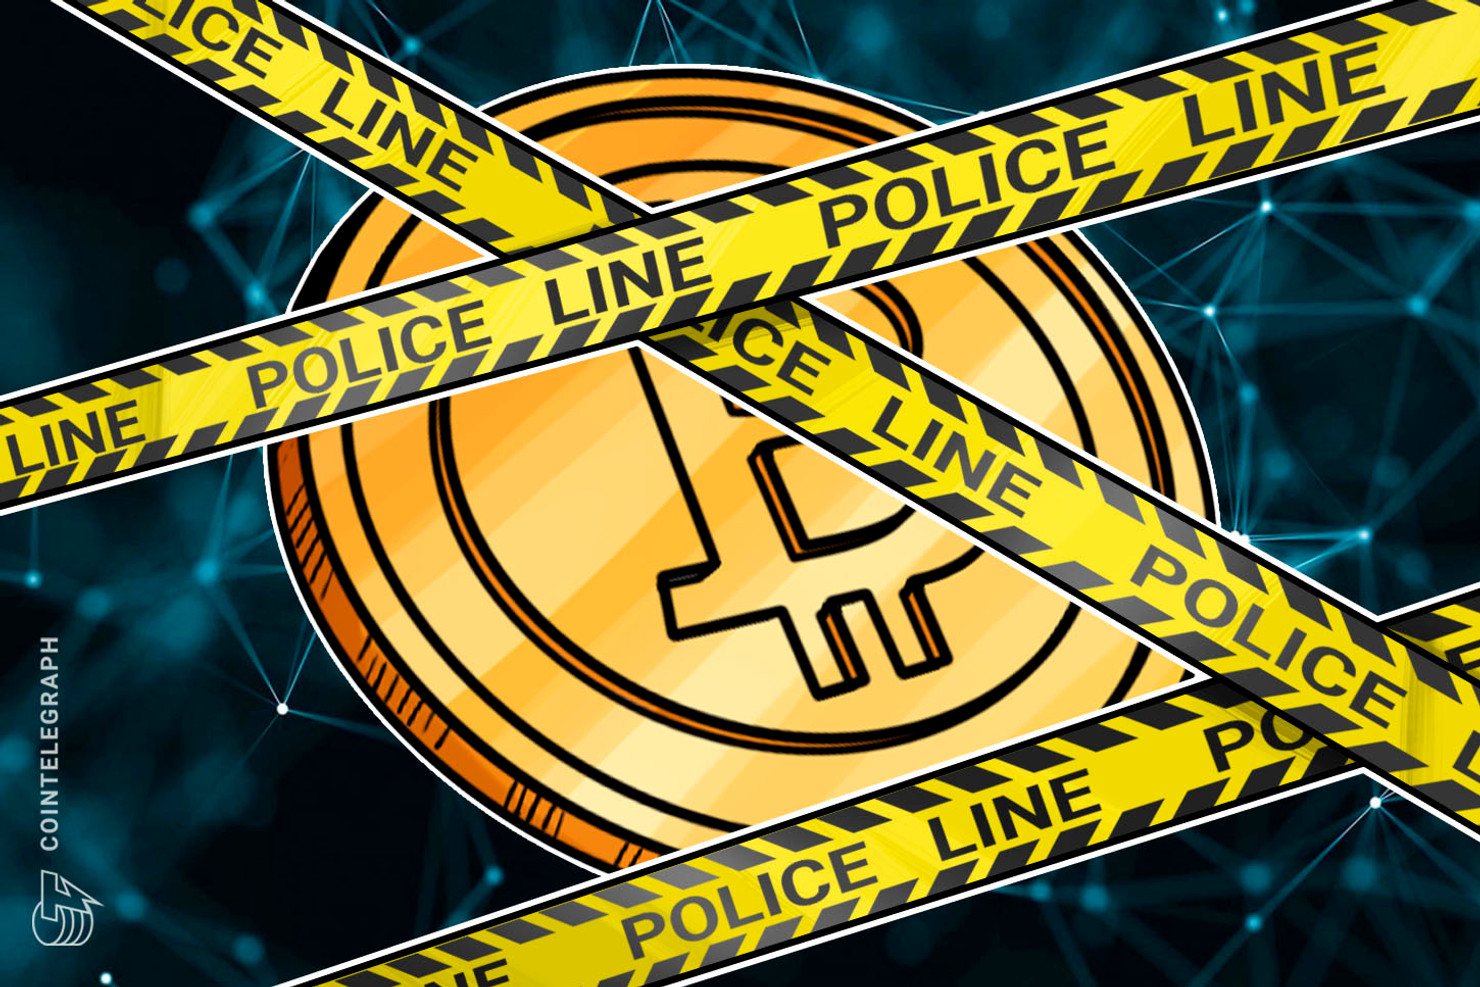 UK High Court Orders Freeze on $1M of Bitcoin in Ransomware Case